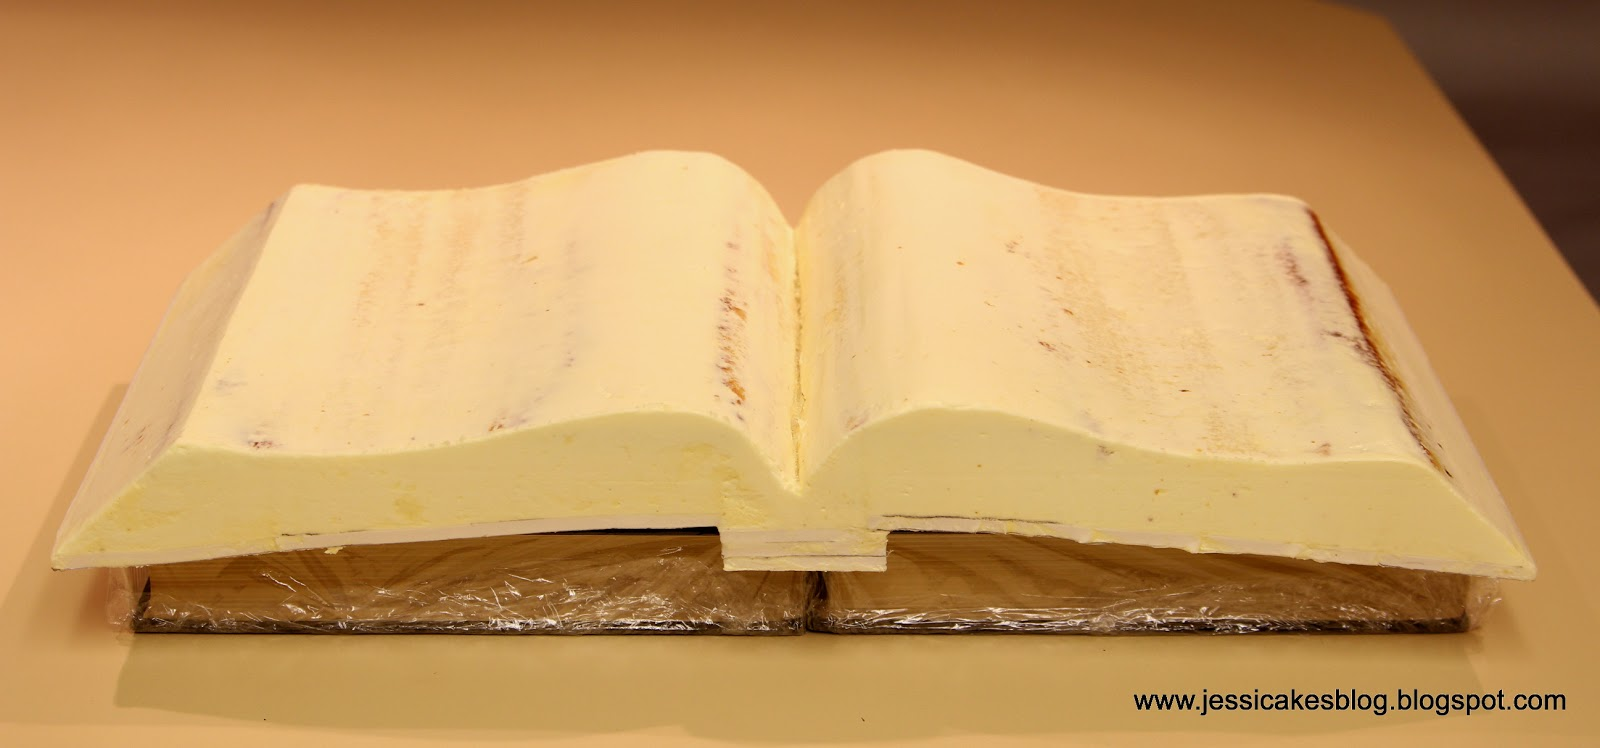 Cake Designs Book Shape : How To Make An Open Book Cake - Jessica Harris Cake Design